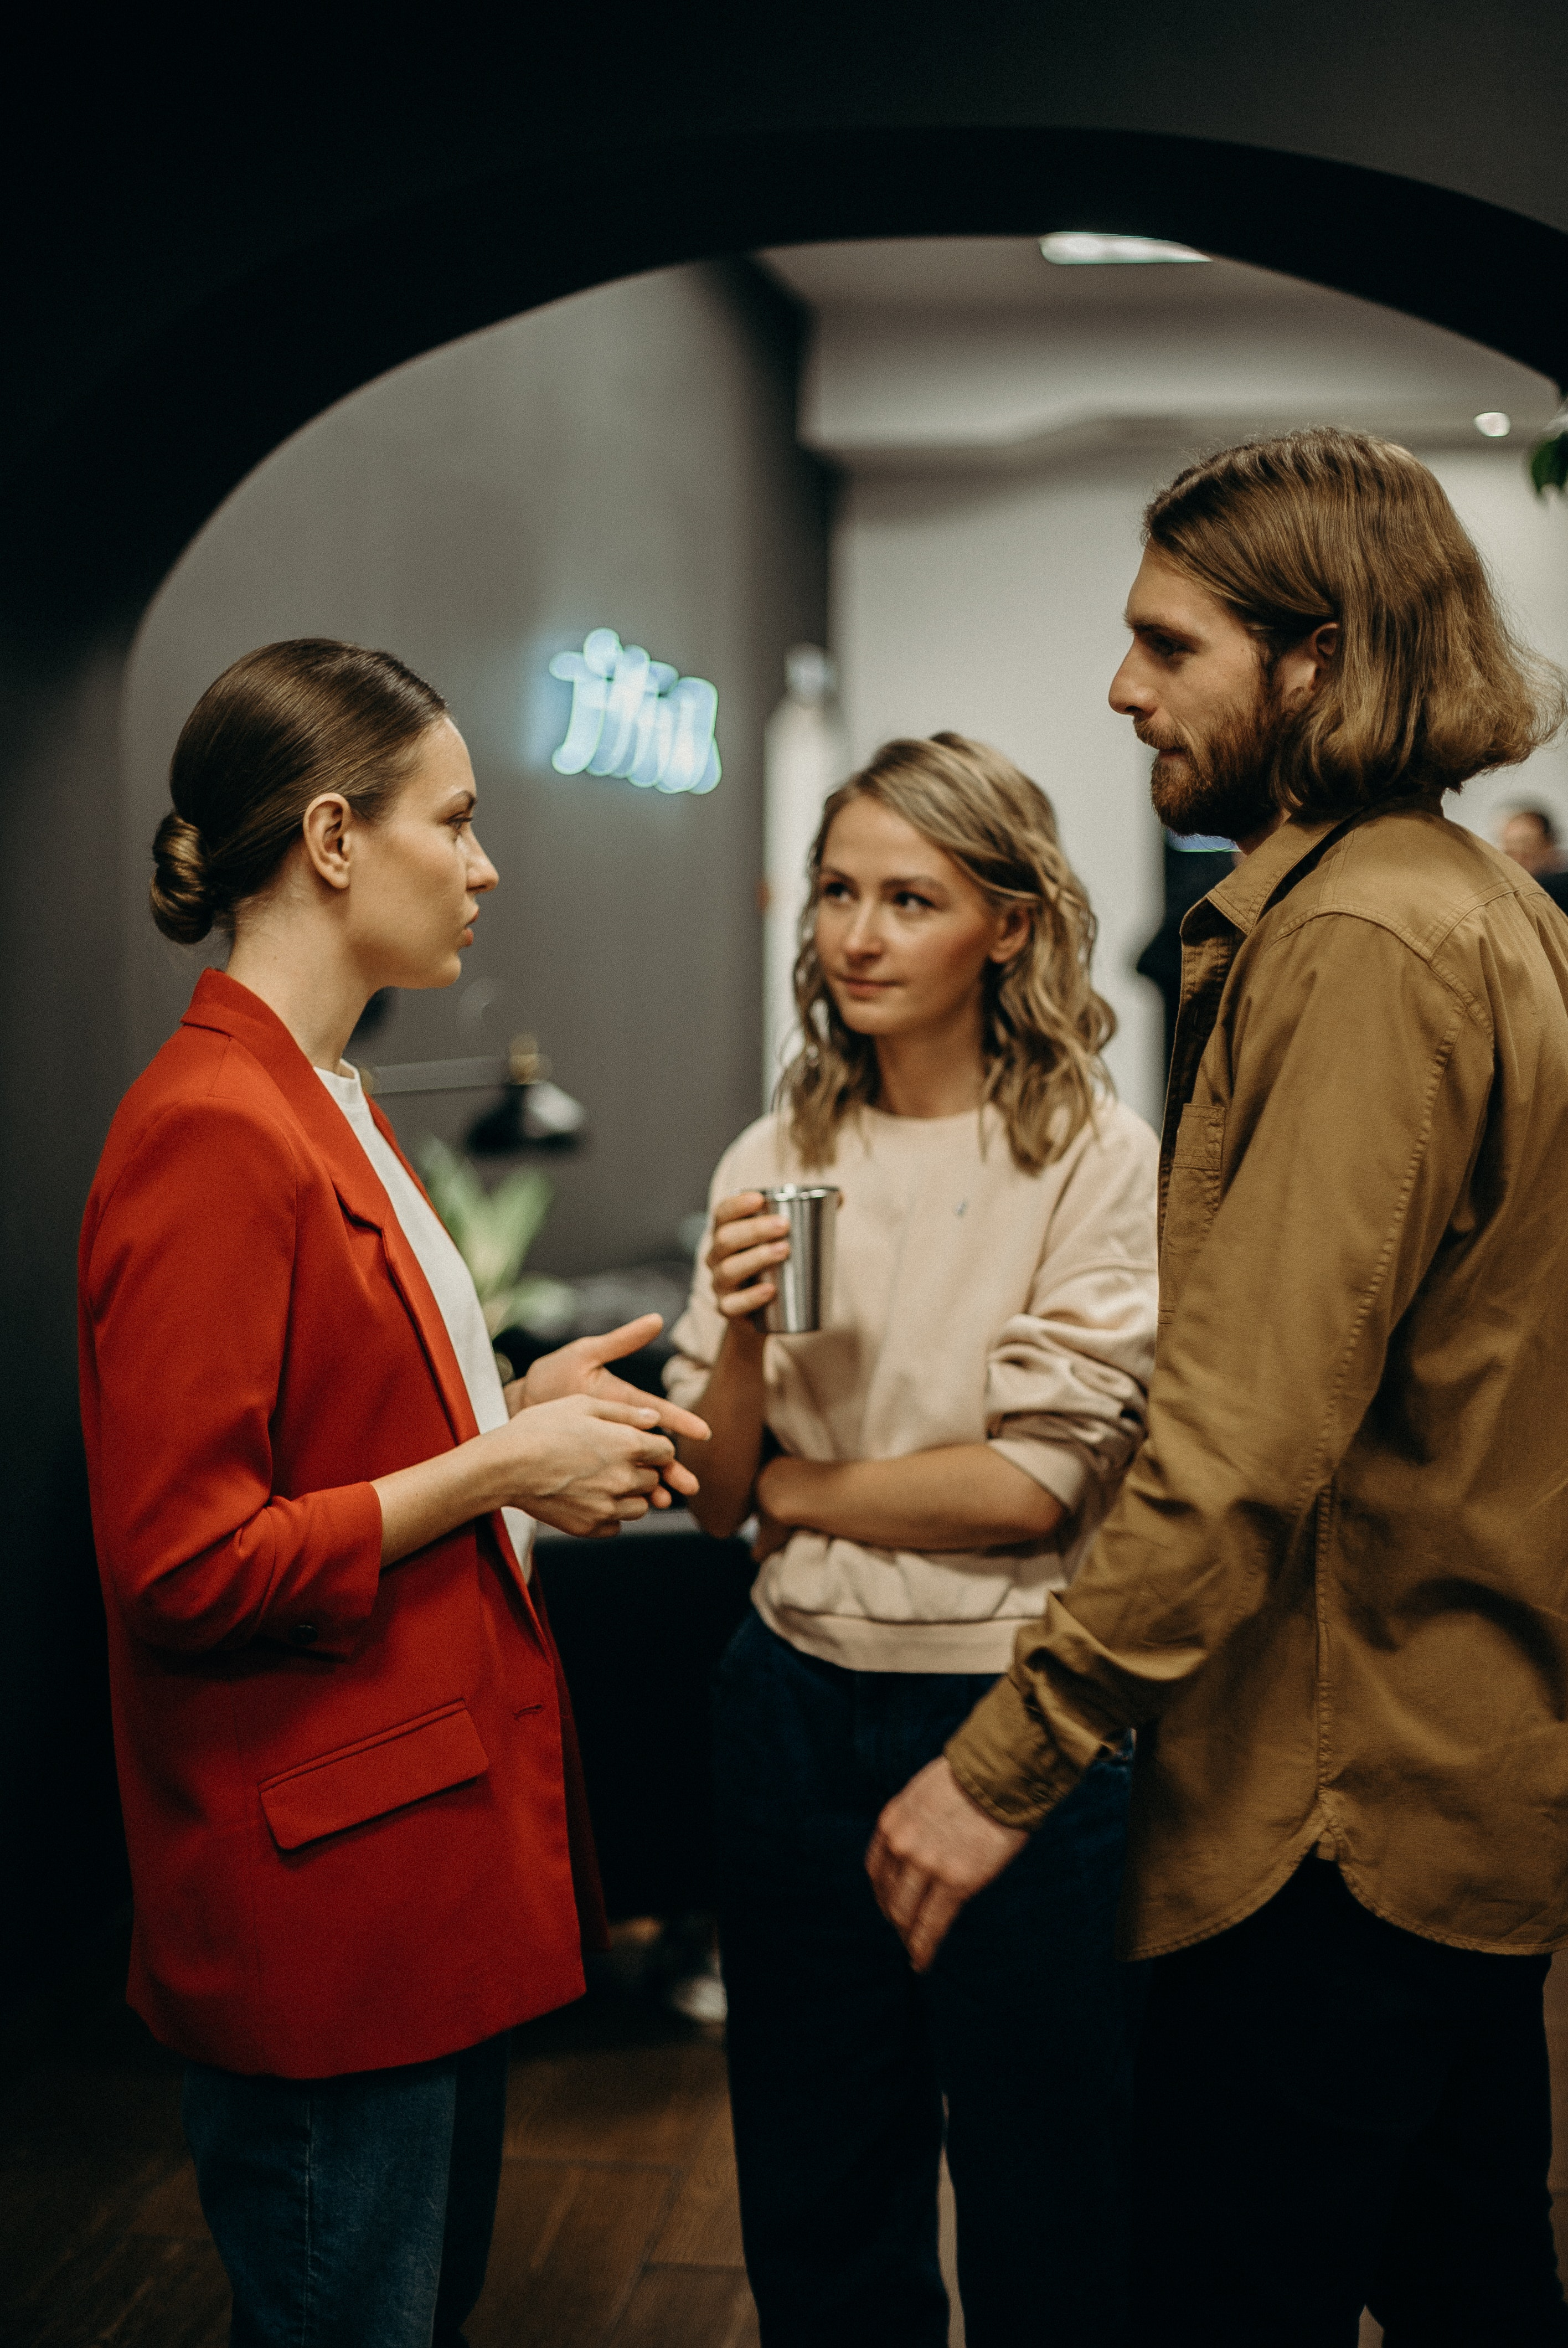 two-women-and-man-talking-3201718